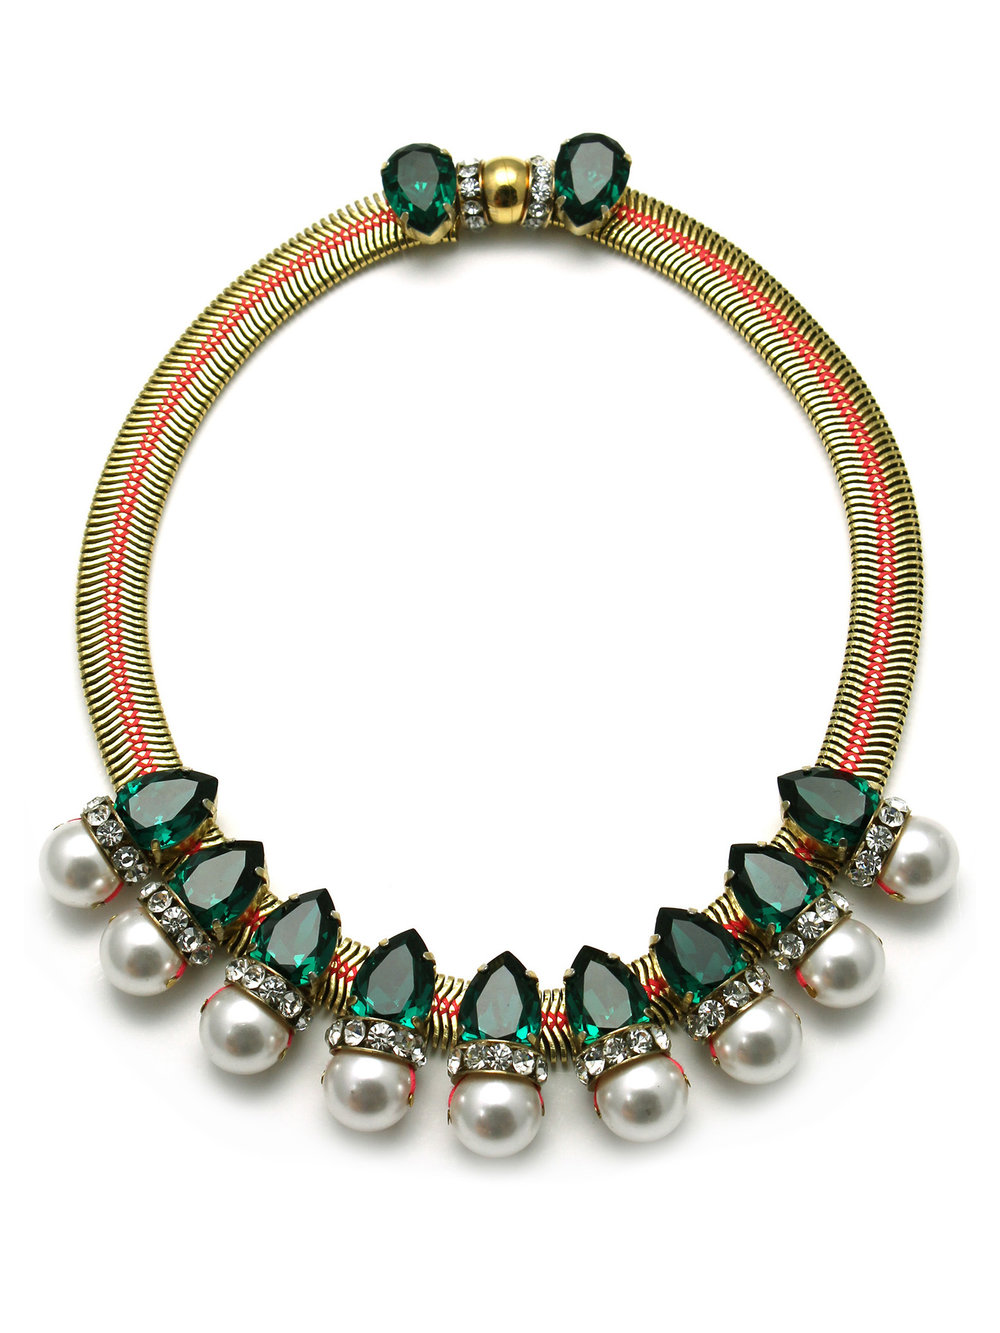 171N-GWP Aragon Necklace - Green_White.jpg